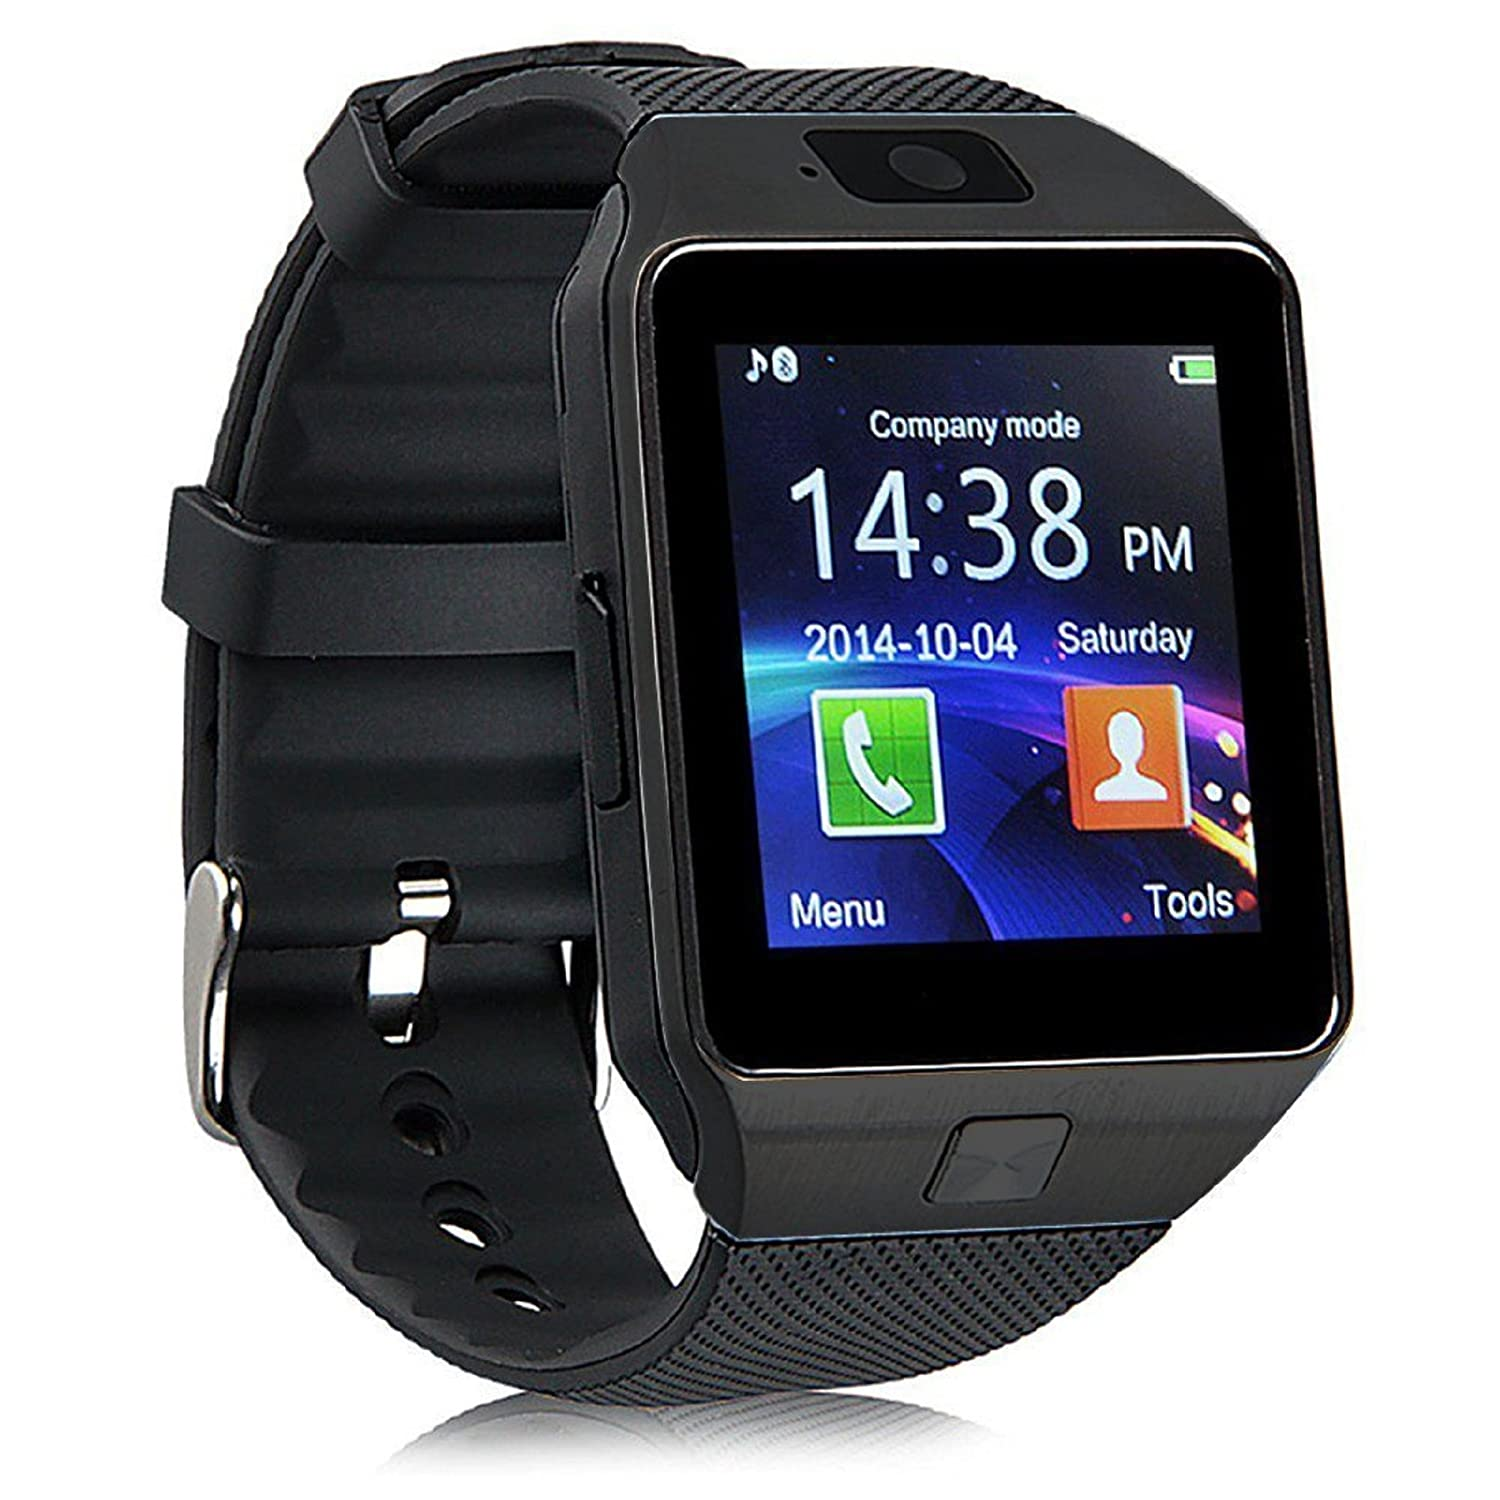 amazonaws production the com smartwatch junkies and s big with goes frontier rugged api gear rug news samsung tech more mobile classic slightly